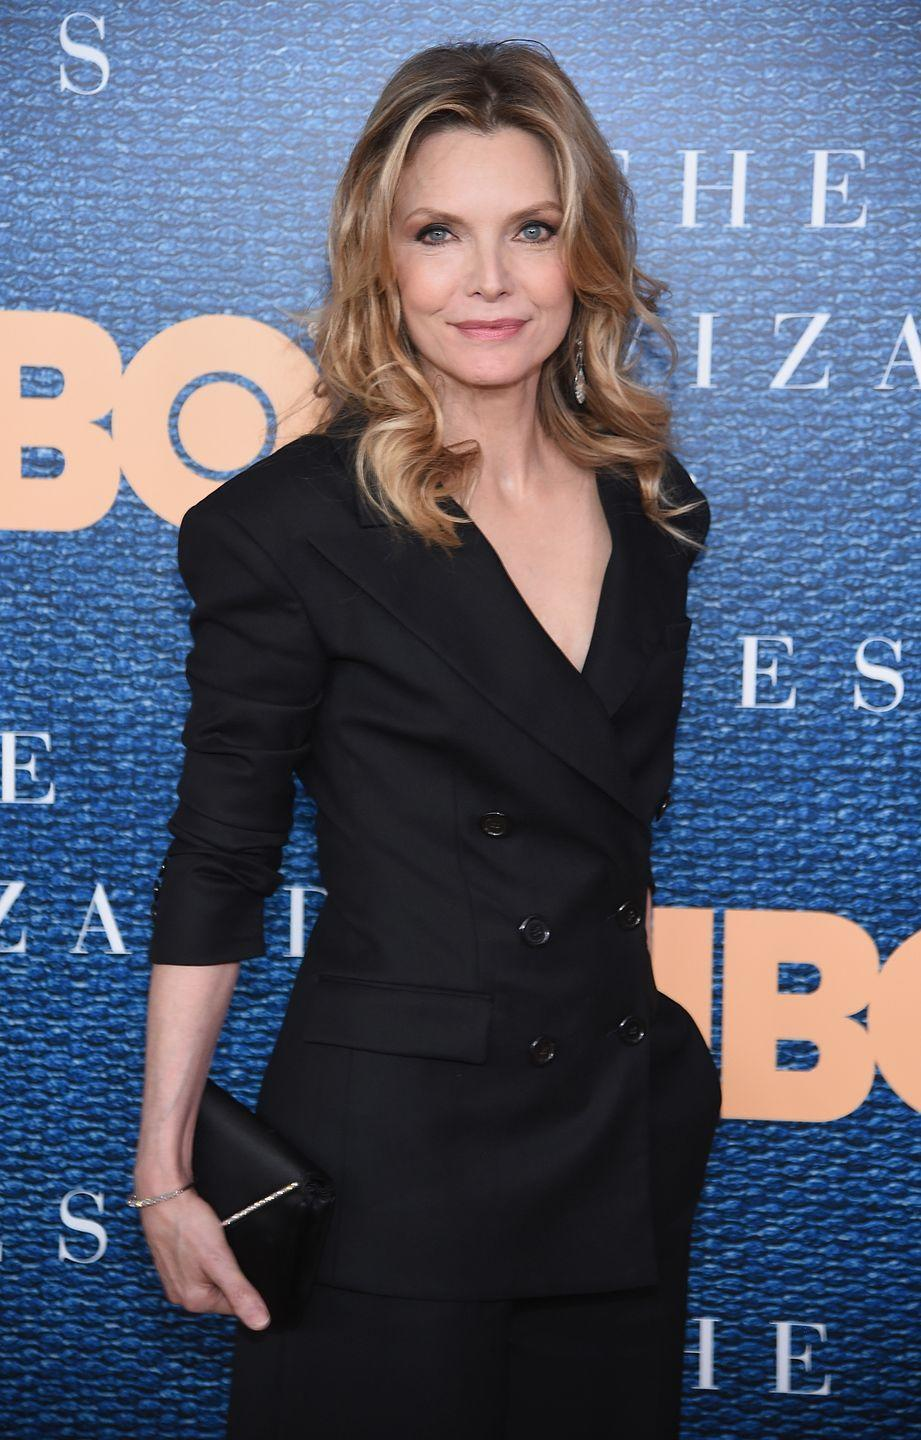 """<p>Pfeiffer <a href=""""http://www.telegraph.co.uk/films/0/career-ender-actors-hated-films/maxwell-caulfield-michelle-pfeiffer-grease-ii/"""" rel=""""nofollow noopener"""" target=""""_blank"""" data-ylk=""""slk:revealed"""" class=""""link rapid-noclick-resp"""">revealed</a> in 2007, """"I hated that film with a vengeance and could not believe how bad it was. At the time I was young and didn't know any better.""""</p>"""